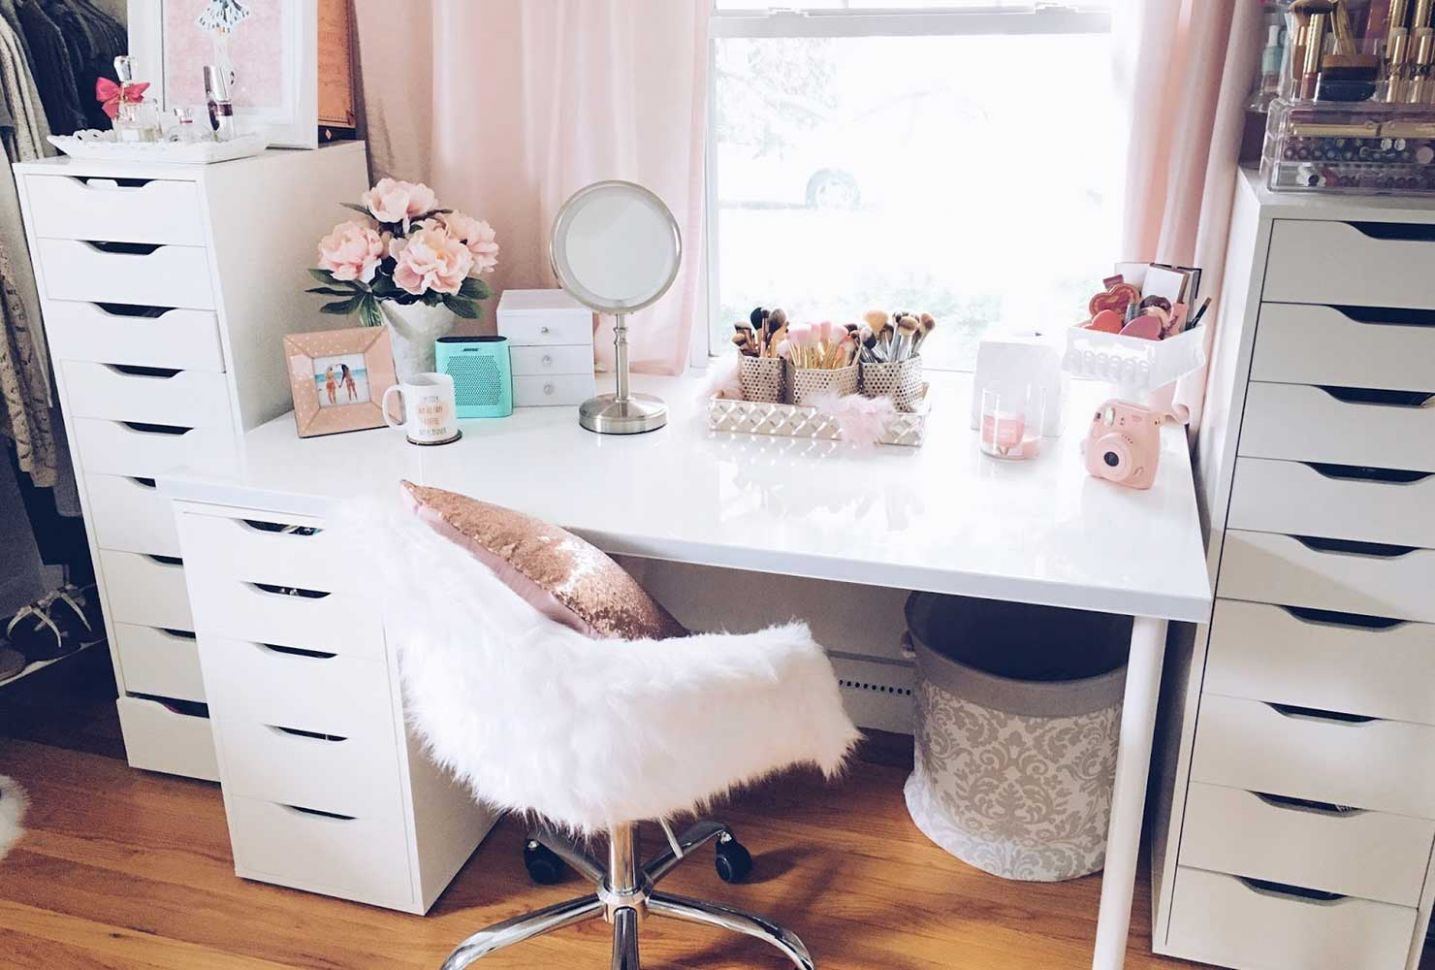 9 Makeup Room Ideas To Brighten Your Morning Routine | Shutterfly - makeup bedroom